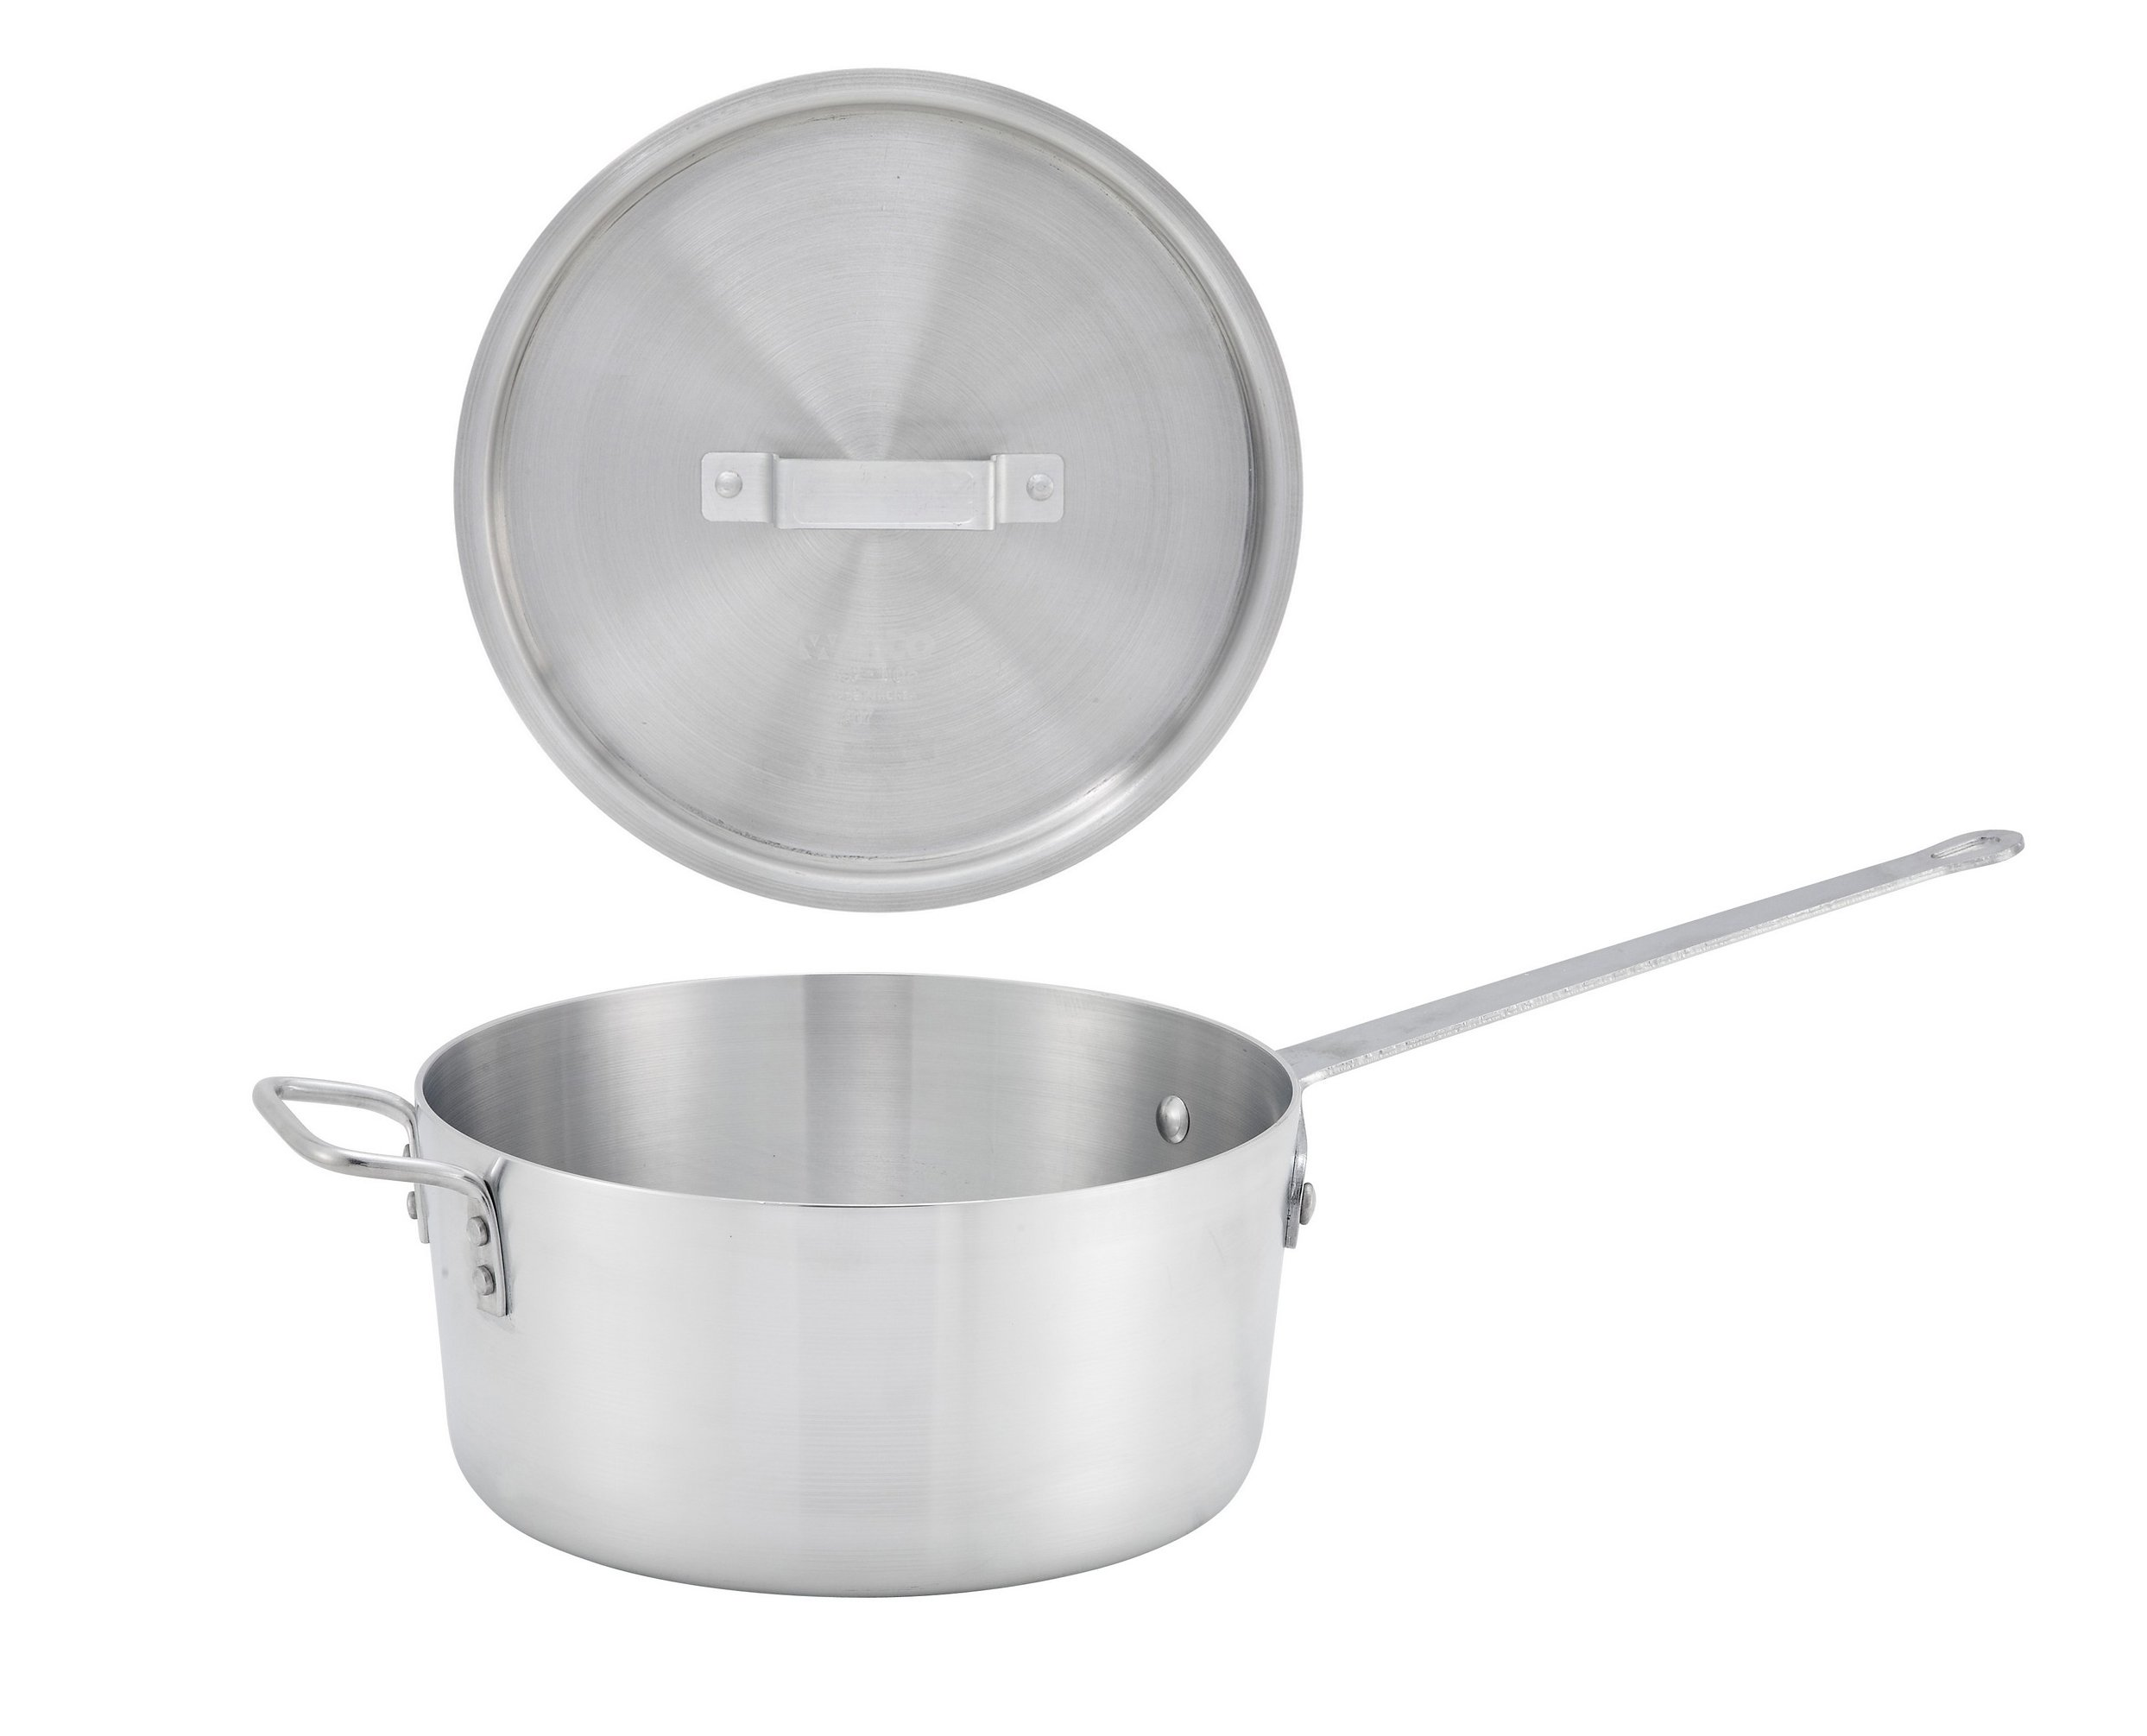 Winco ASP-10, 10-Quart 11-1/2'' x 5-3/4'' Aluminum Sauce Pan with Helper Handle and Matching Cover, Commercial Grade Stewpan with Lid, Saucepan with Metal Handle